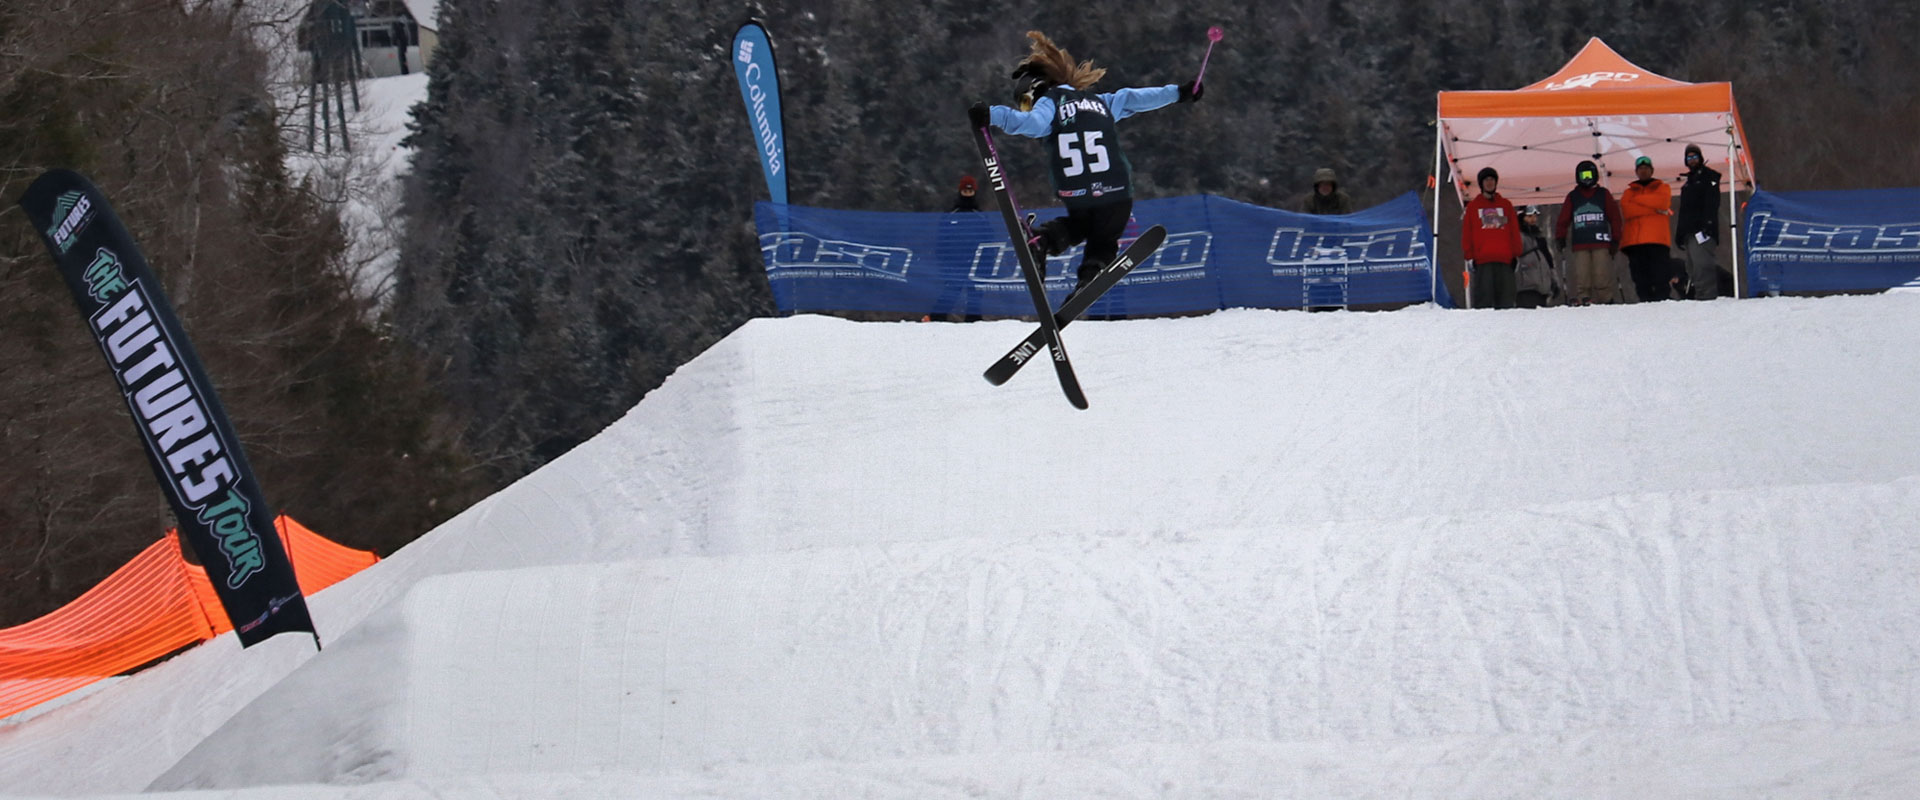 Futures Tour Loon slopestyle